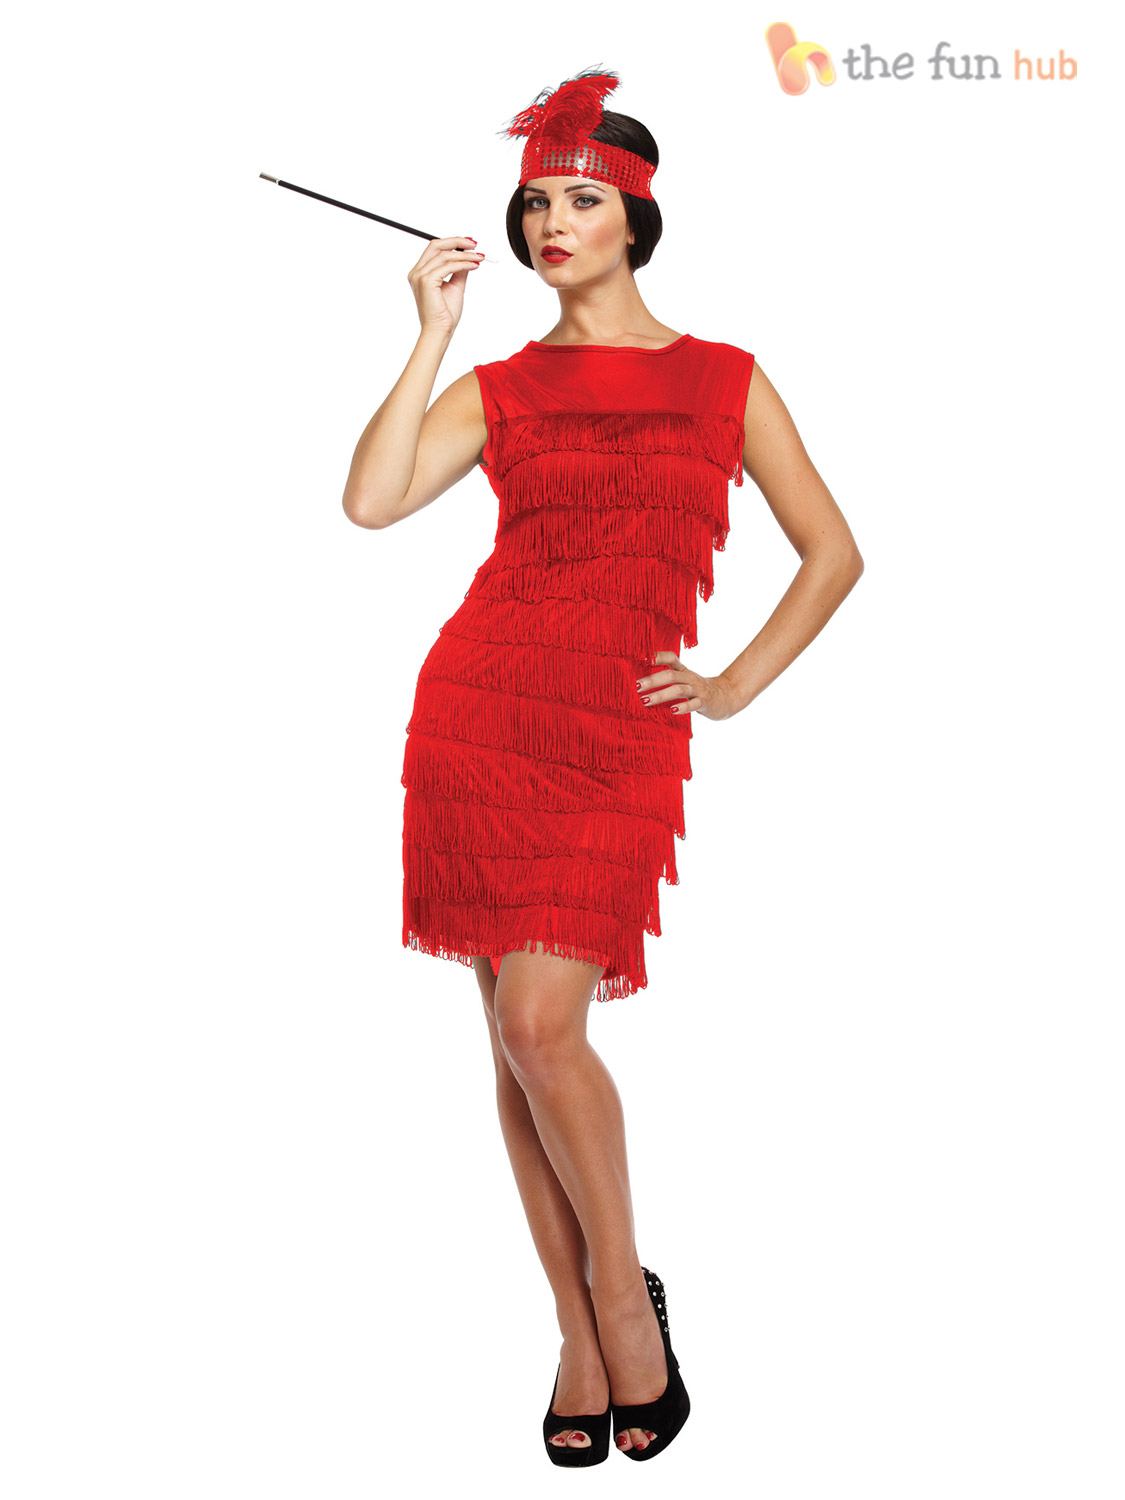 symbolism of the red flapper dress See a rich collection of stock images, vectors, or photos for flapper dress you can buy on shutterstock explore quality images, photos, art & more.